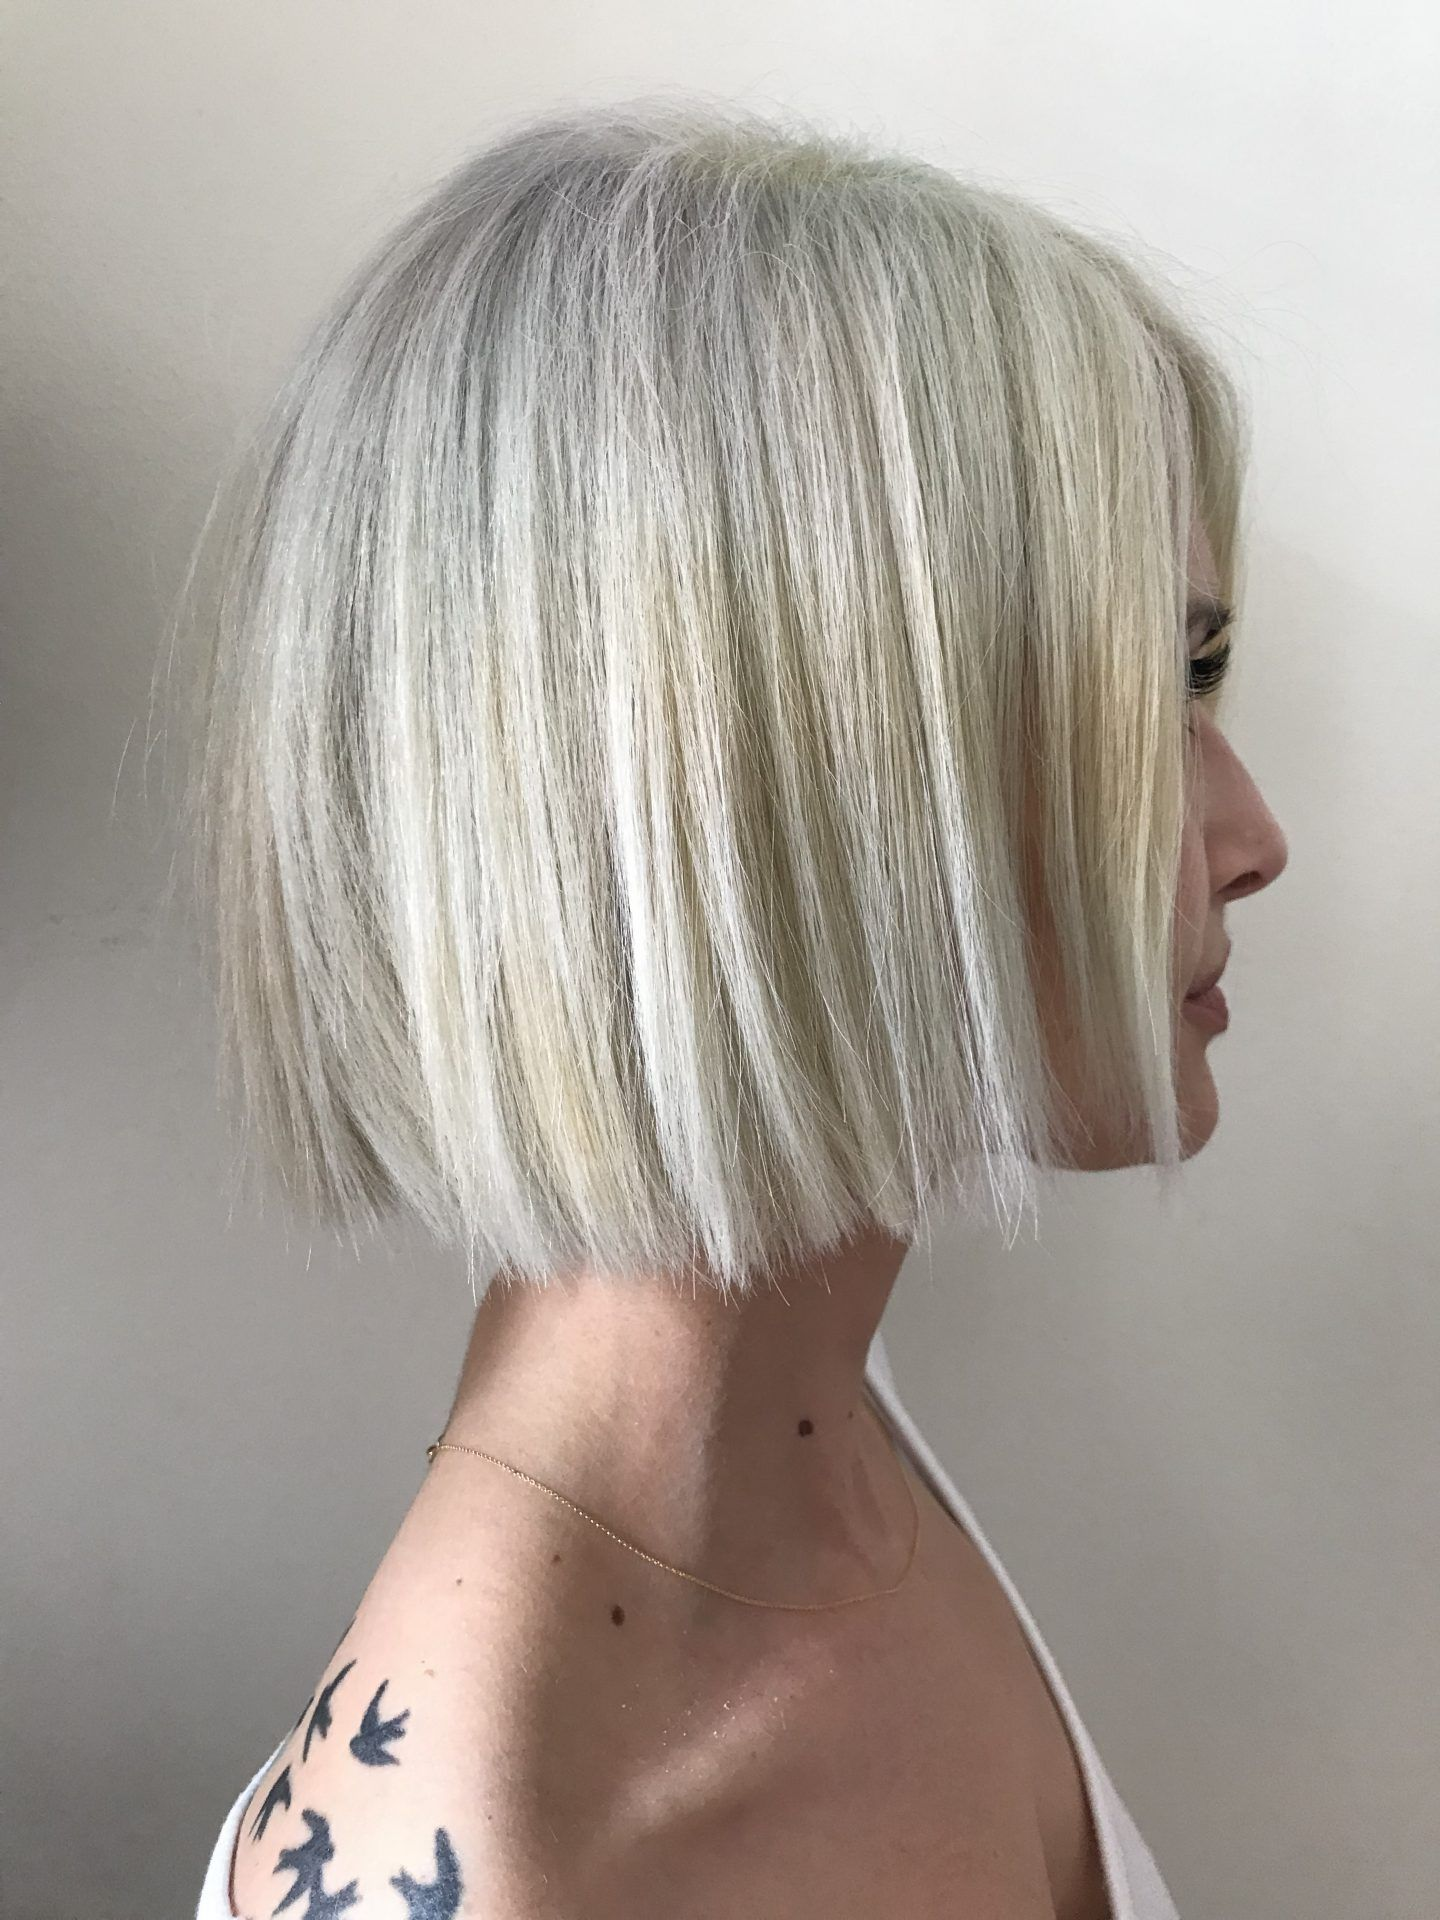 6 Sneaky Ways to Get Your Best Haircut Ever | Hawk